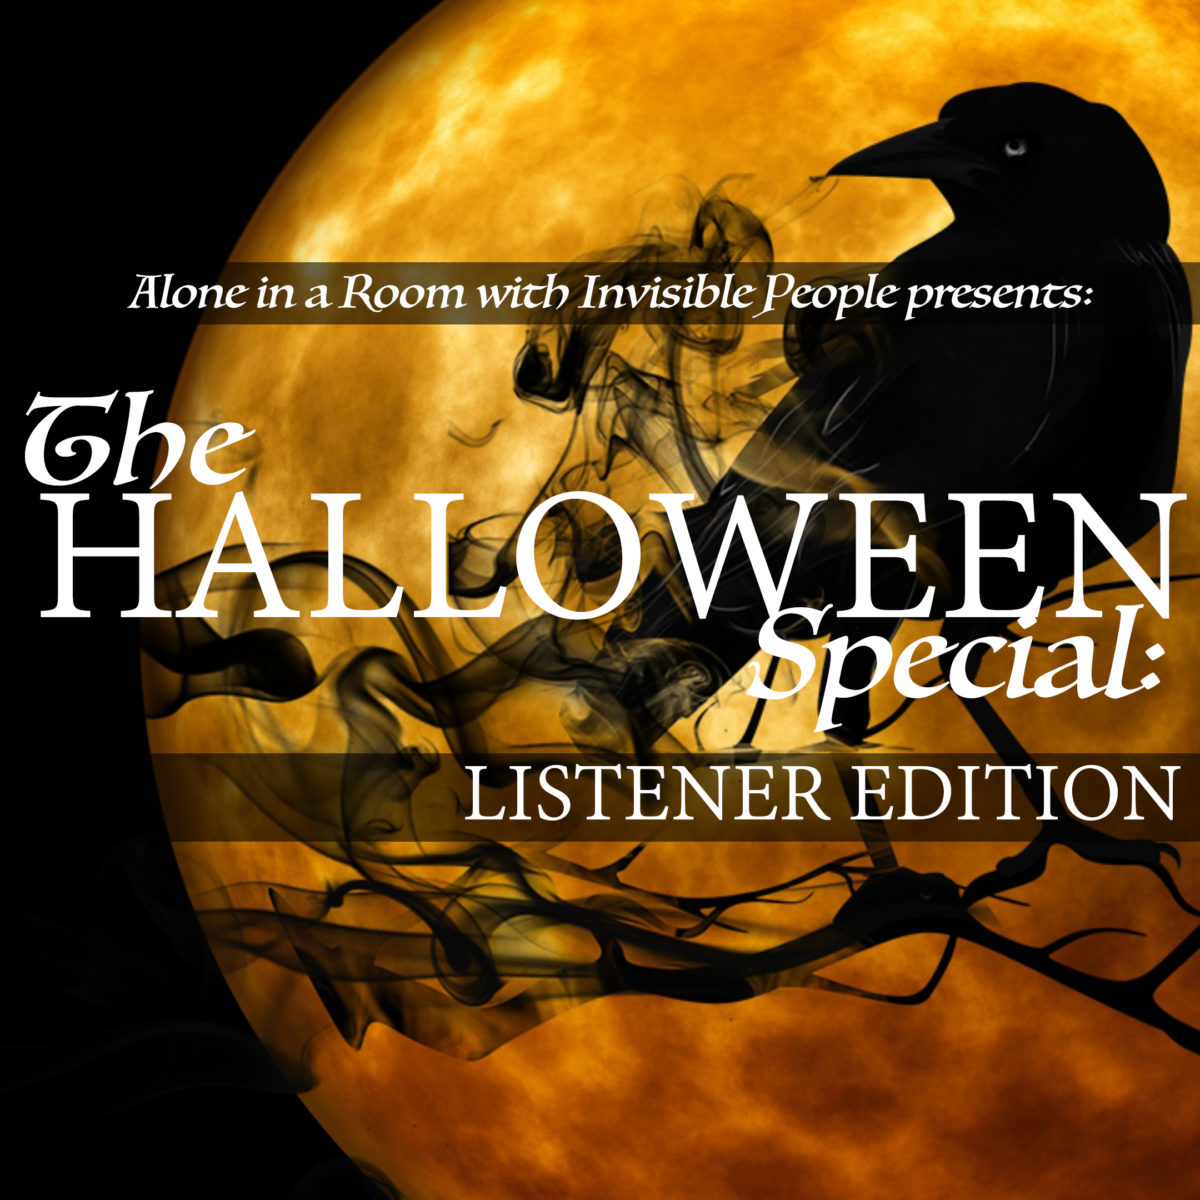 Episode 18: Halloween Special: Listener Edition